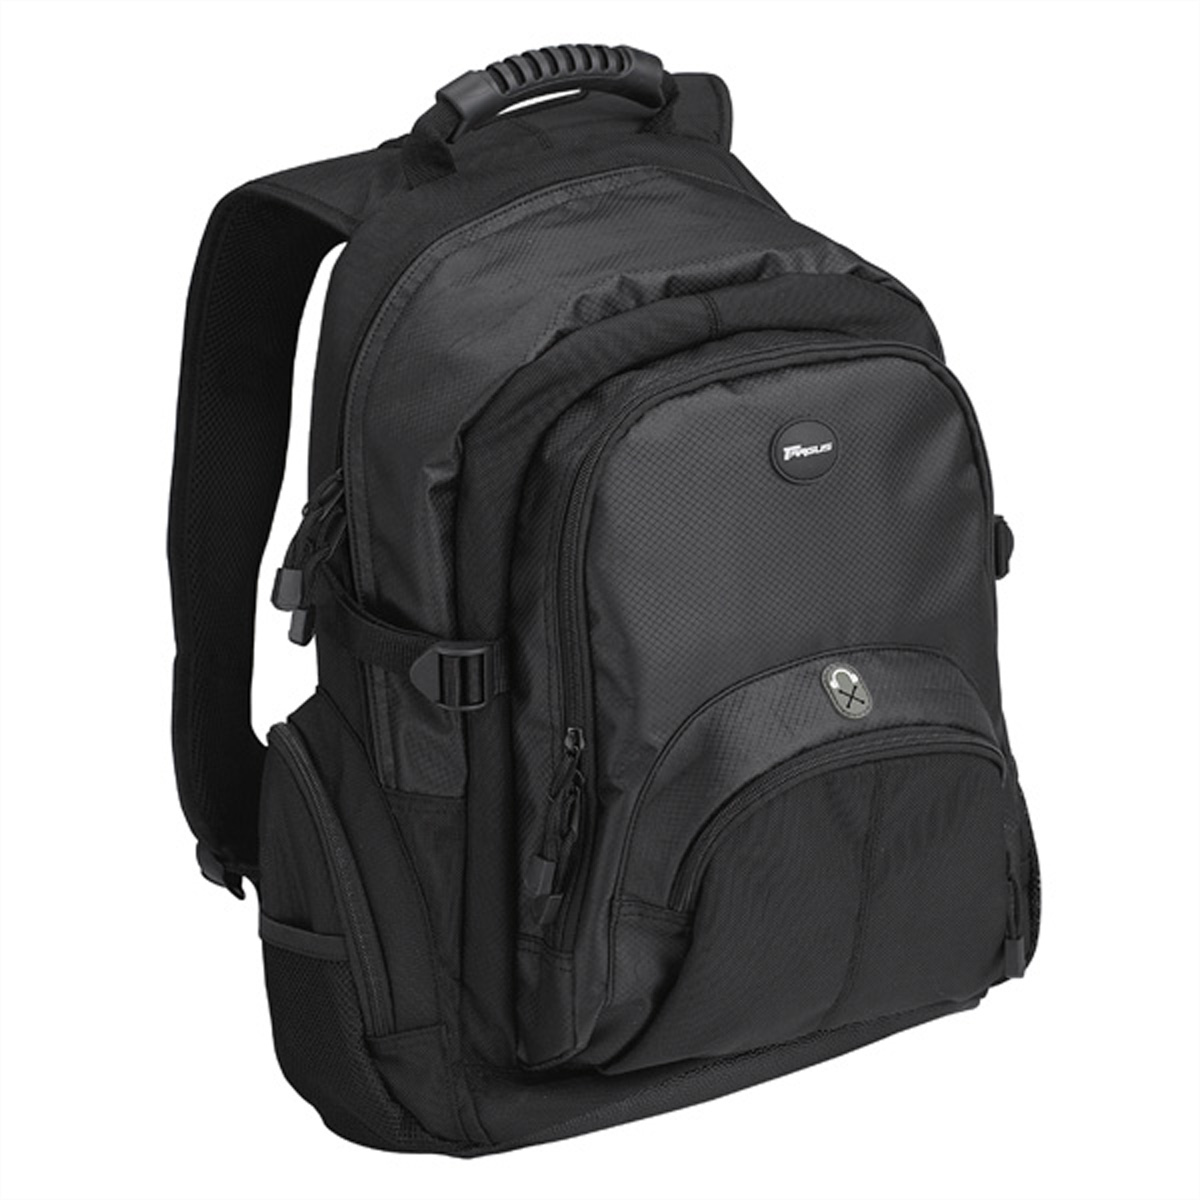 TARGUS Notebook Backpac (CN600) 15,4 - 16 Zoll (39.1 - 40.6 cm)